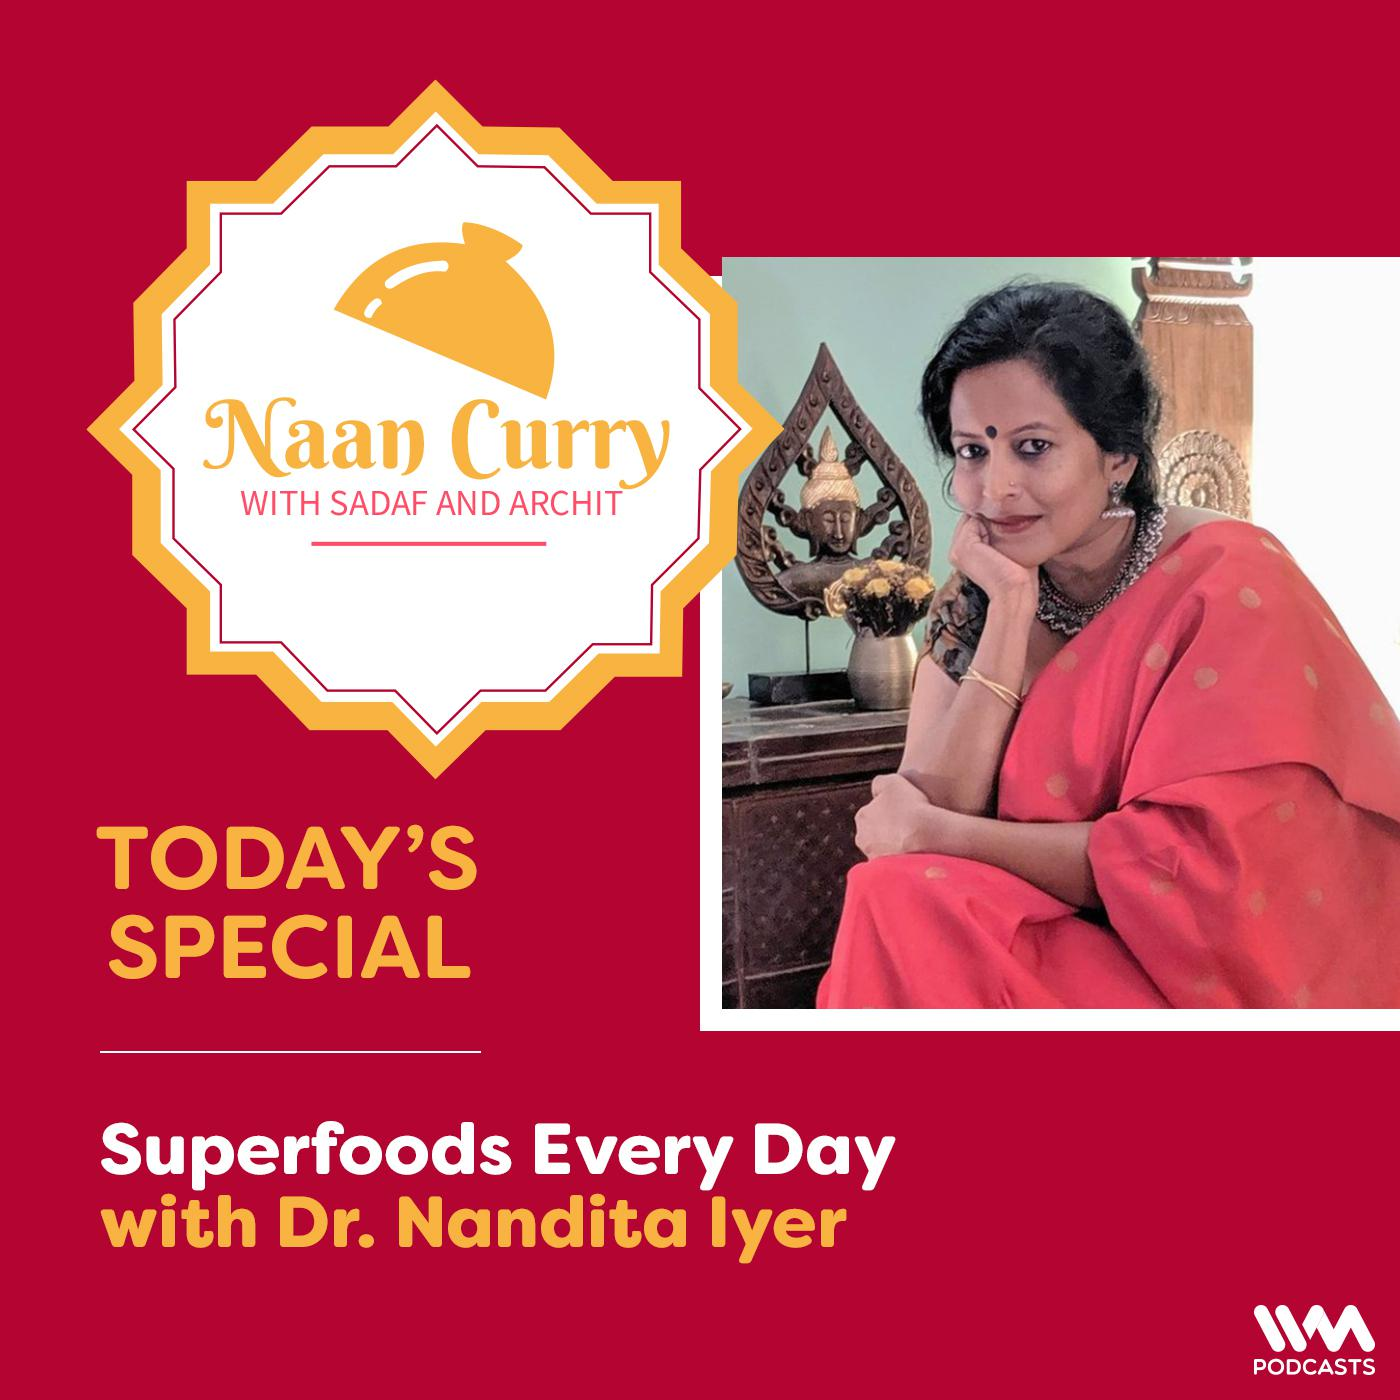 Superfoods Every Day with Dr. Nandita Iyer